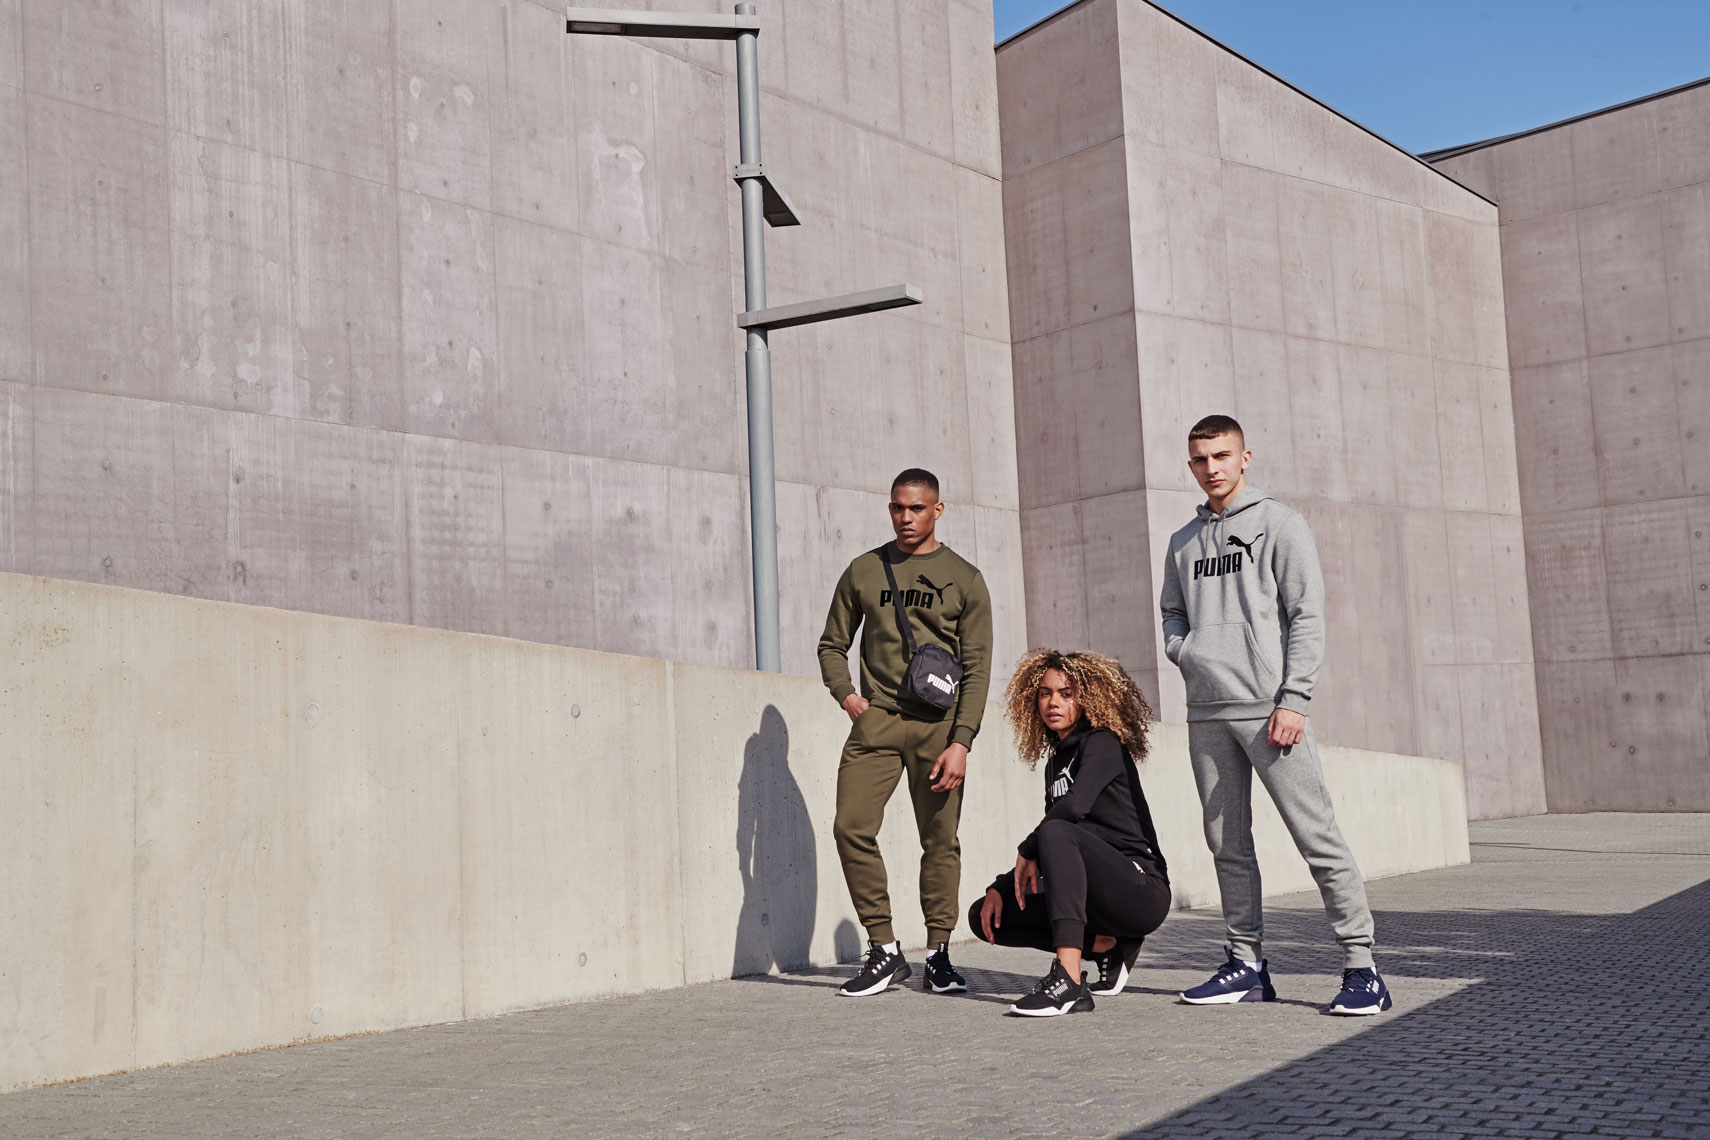 issie-gibbons-fashion-stylist-puma-campaign-sports-direct-group-shot-ocean-lewis